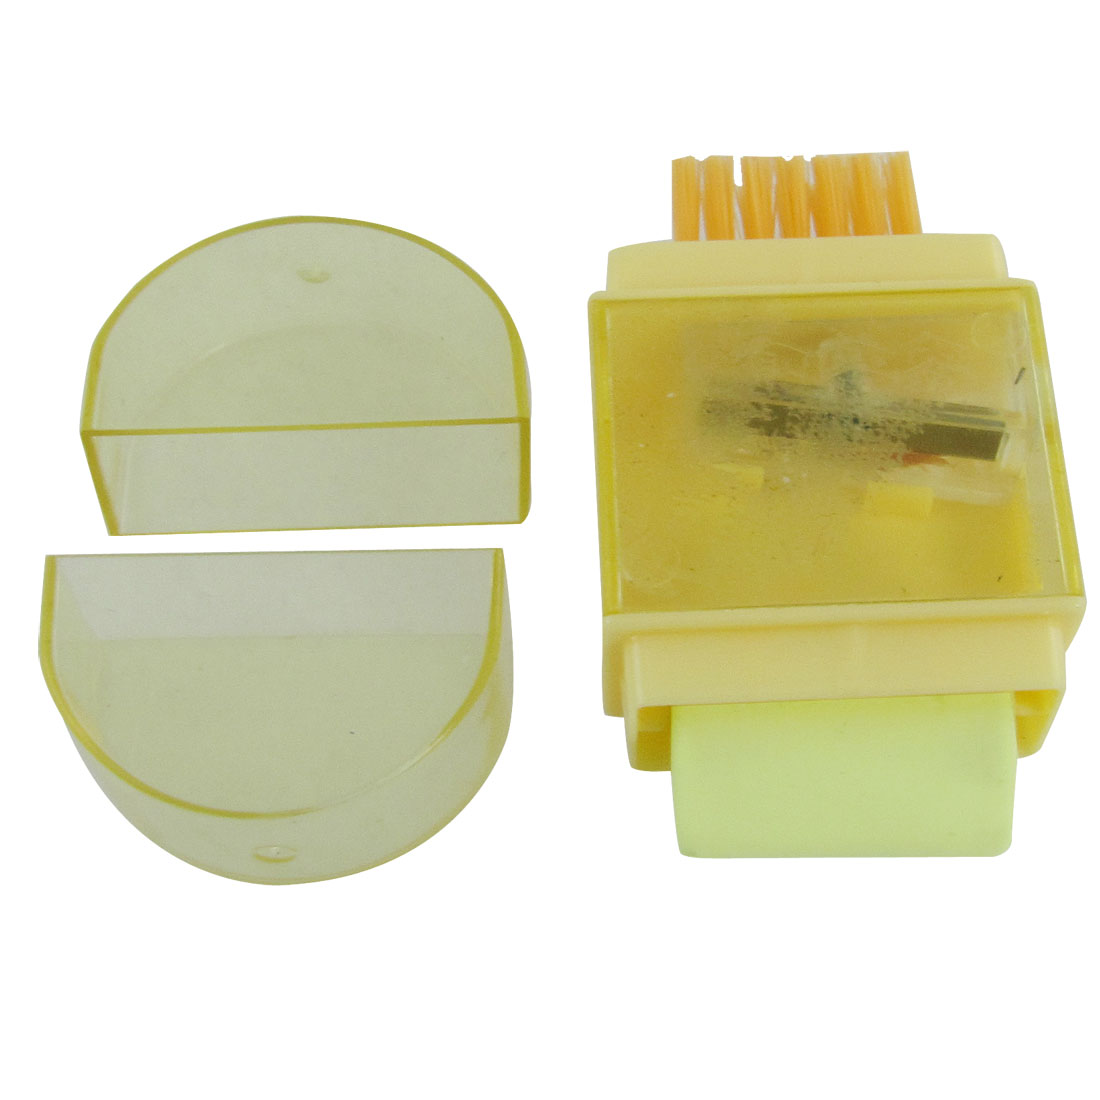 Yellow Plastic Eraser Cleaning Brush Pencil Sharpener Tool